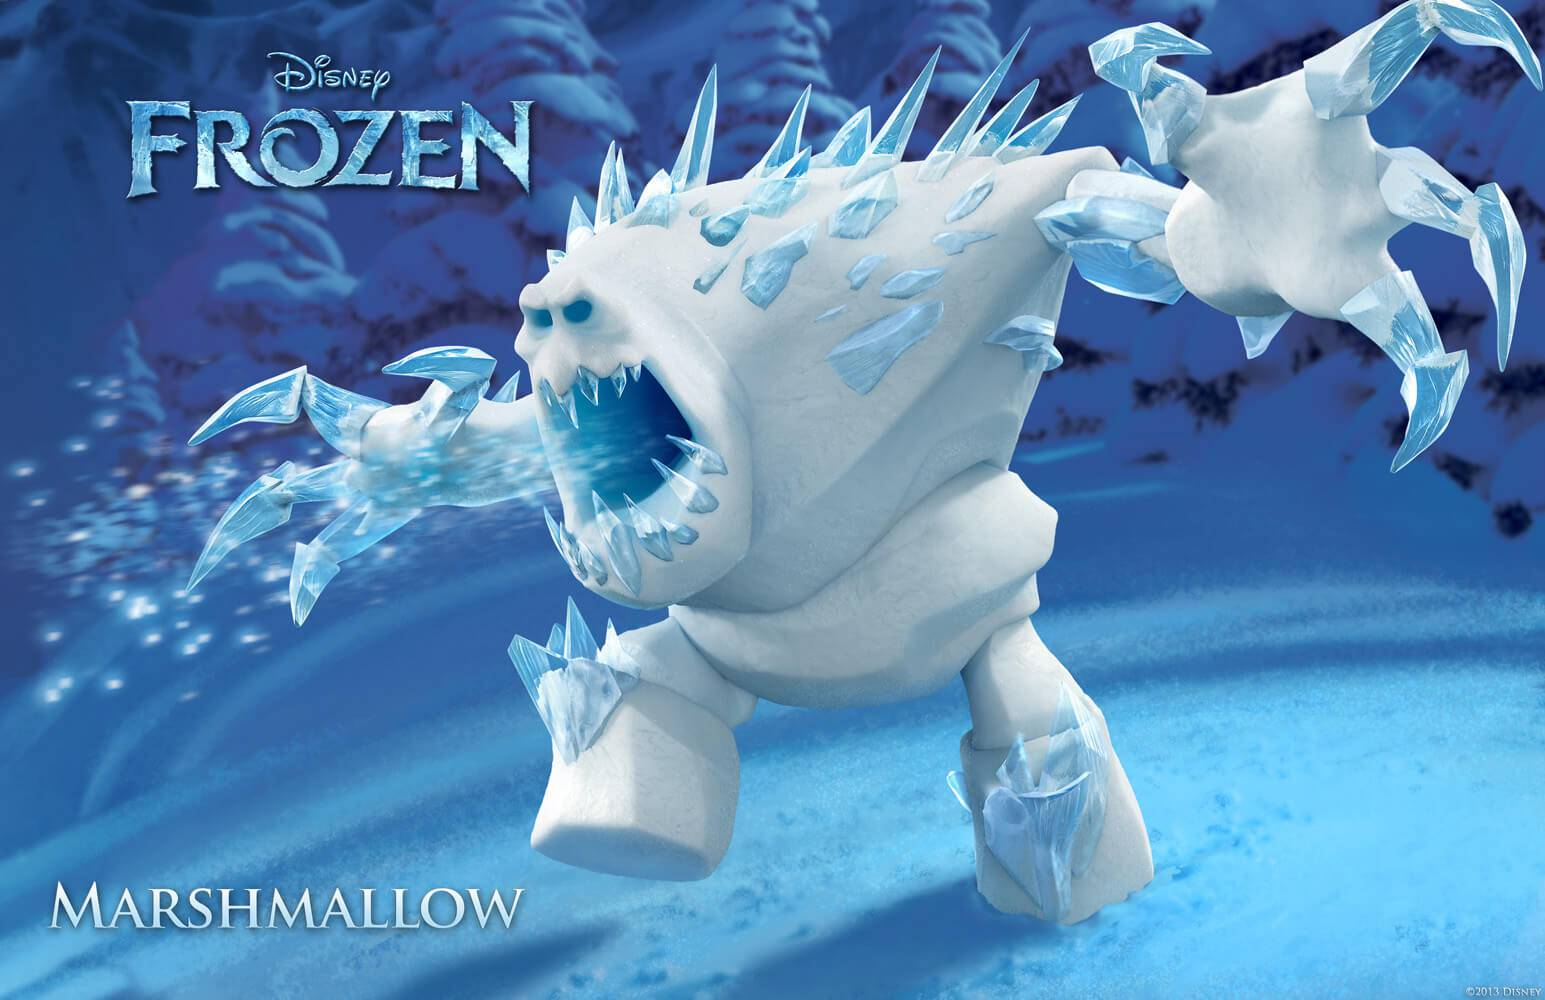 http://www.skwigly.co.uk/wp-content/uploads/2013/11/disney-frozen-Marshmallow.jpg